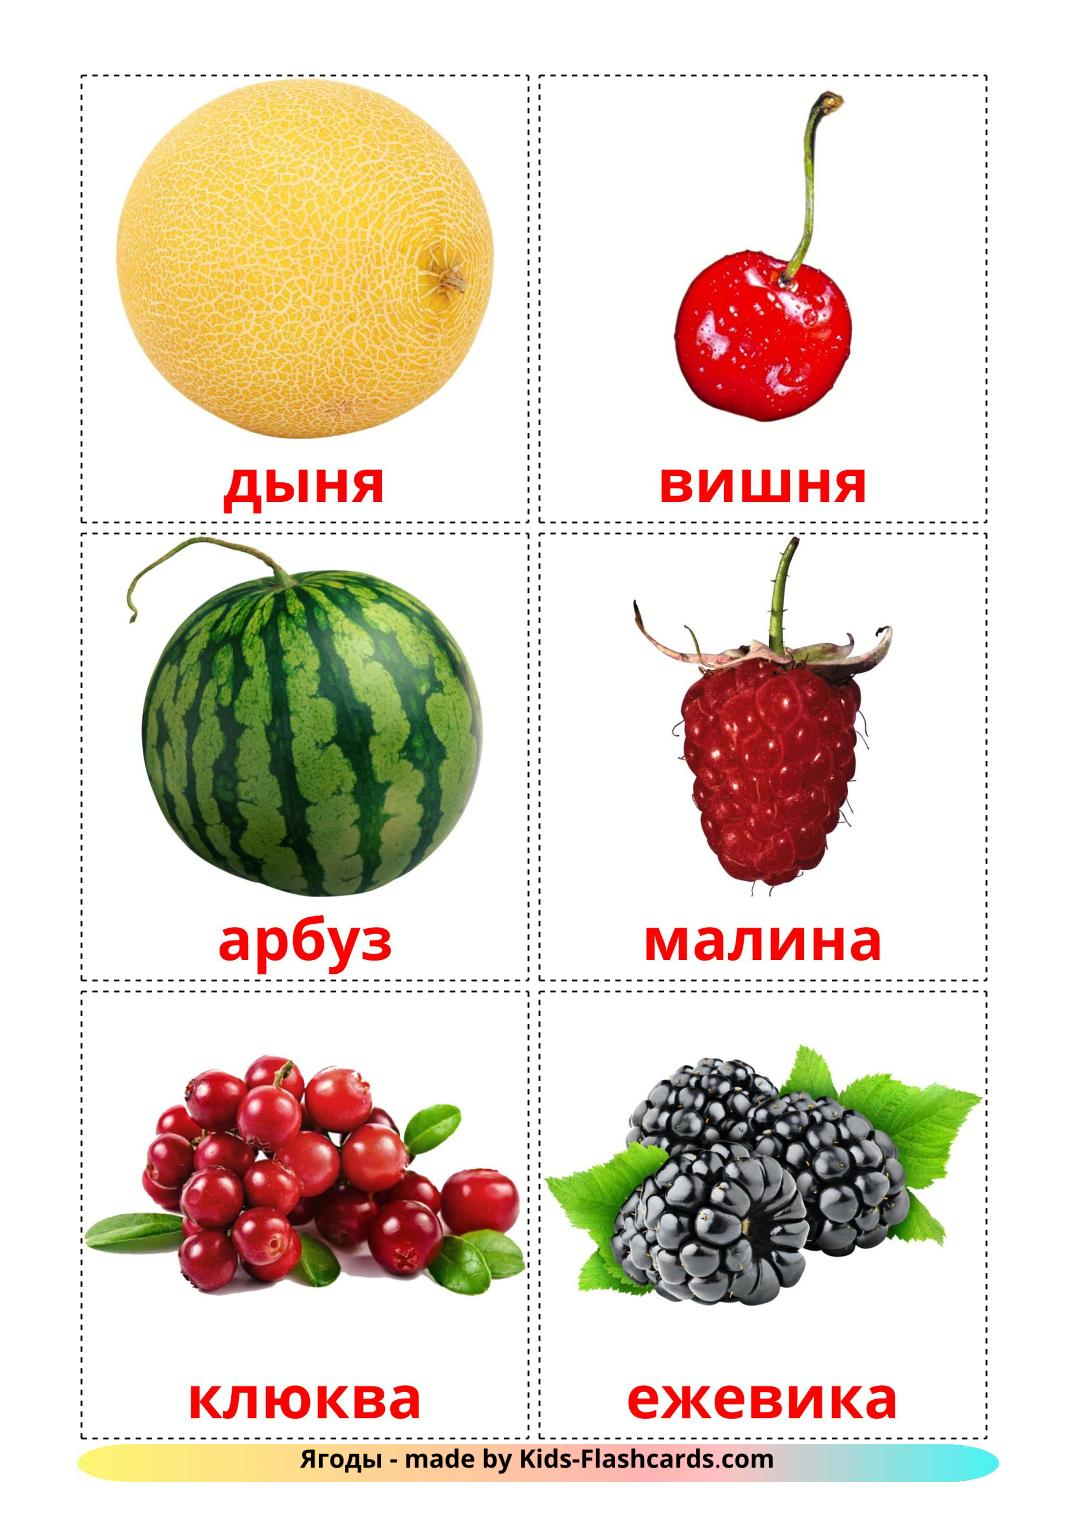 Berries - 11 Free Printable russian Flashcards